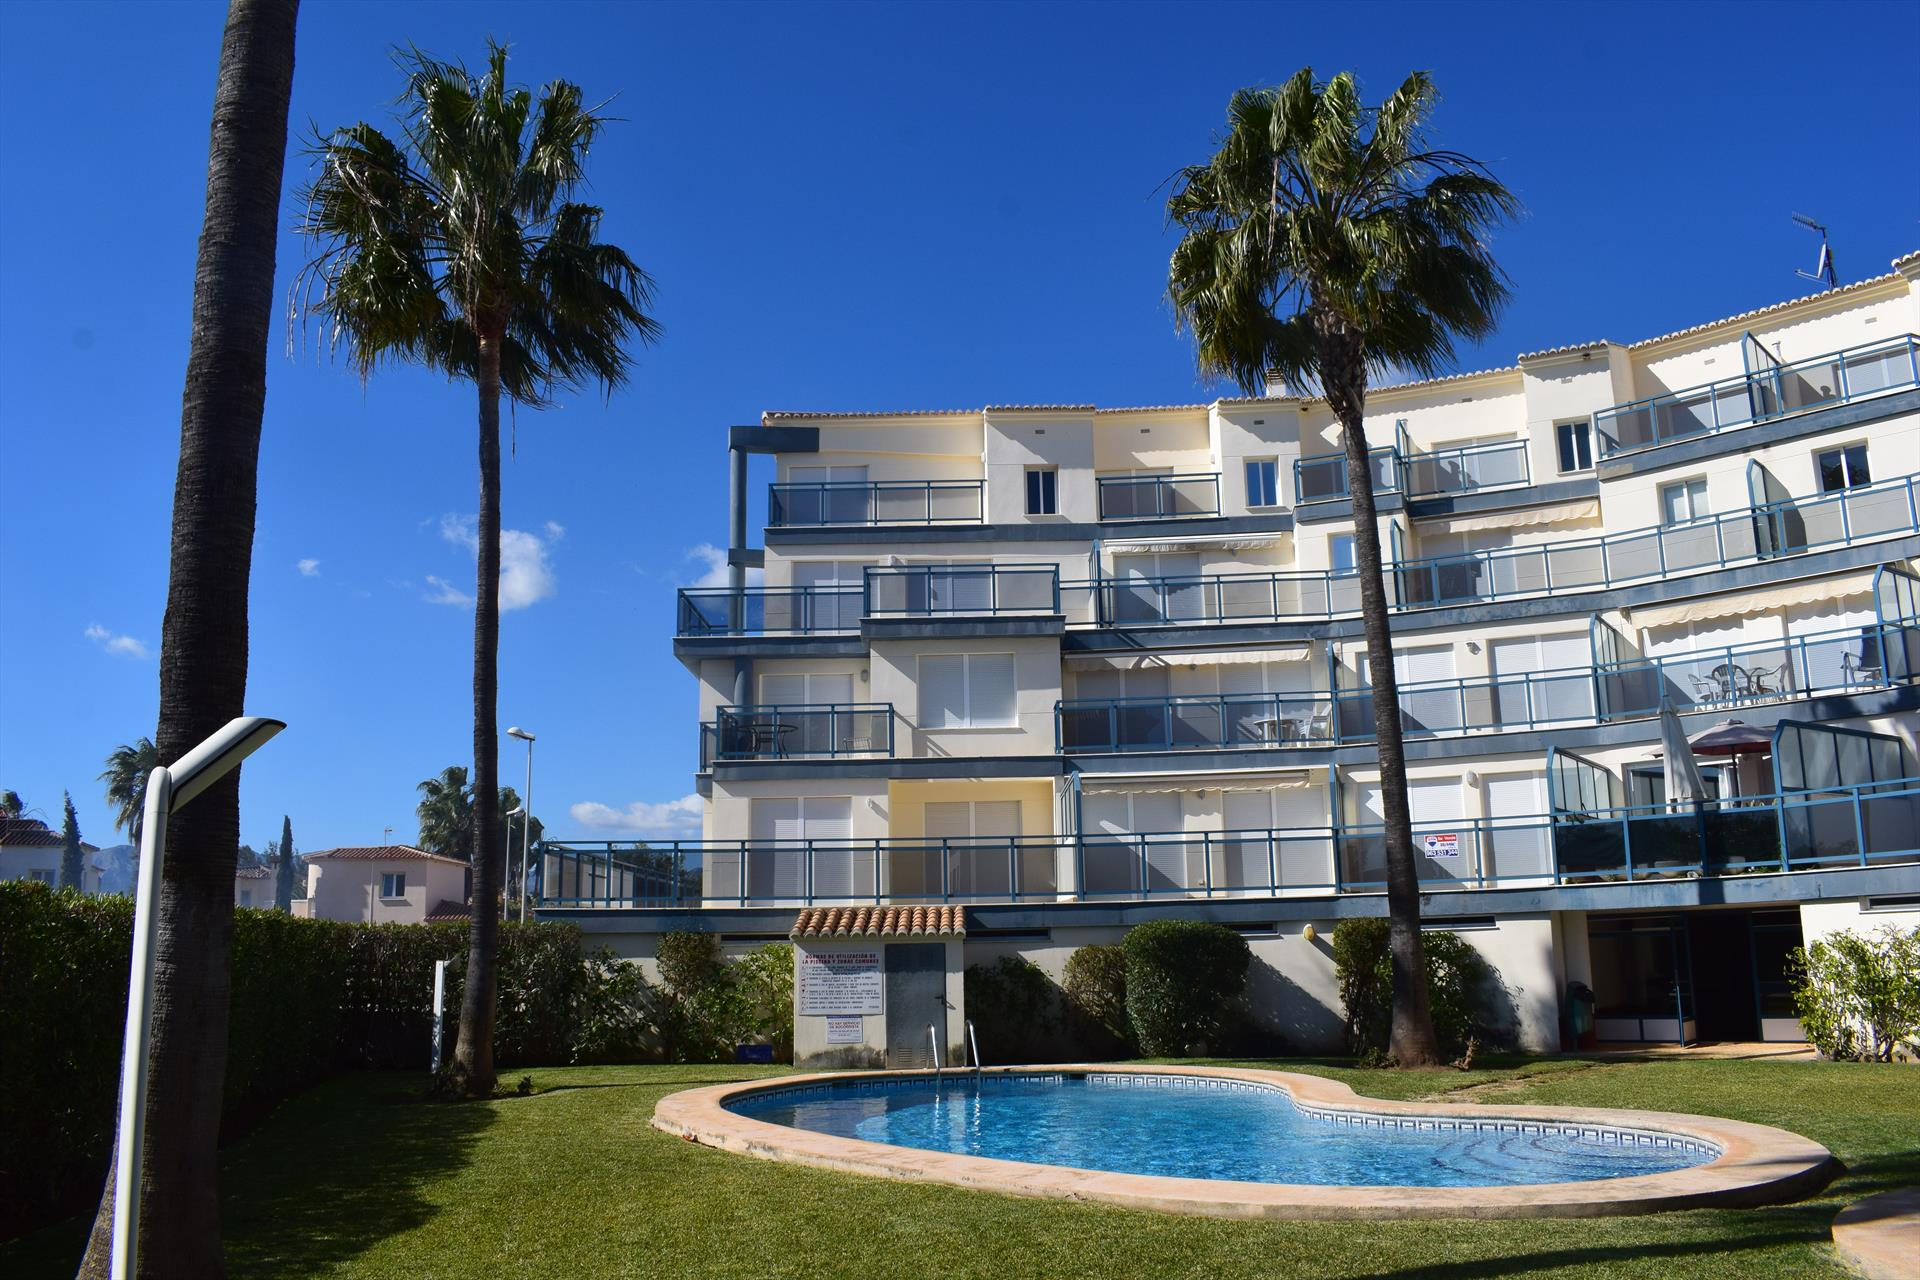 Green Beach Oliva Nova DUP306, Beautiful and cheerful holiday house  with communal pool in Oliva, on the Costa Blanca, Spain for 5 persons.....